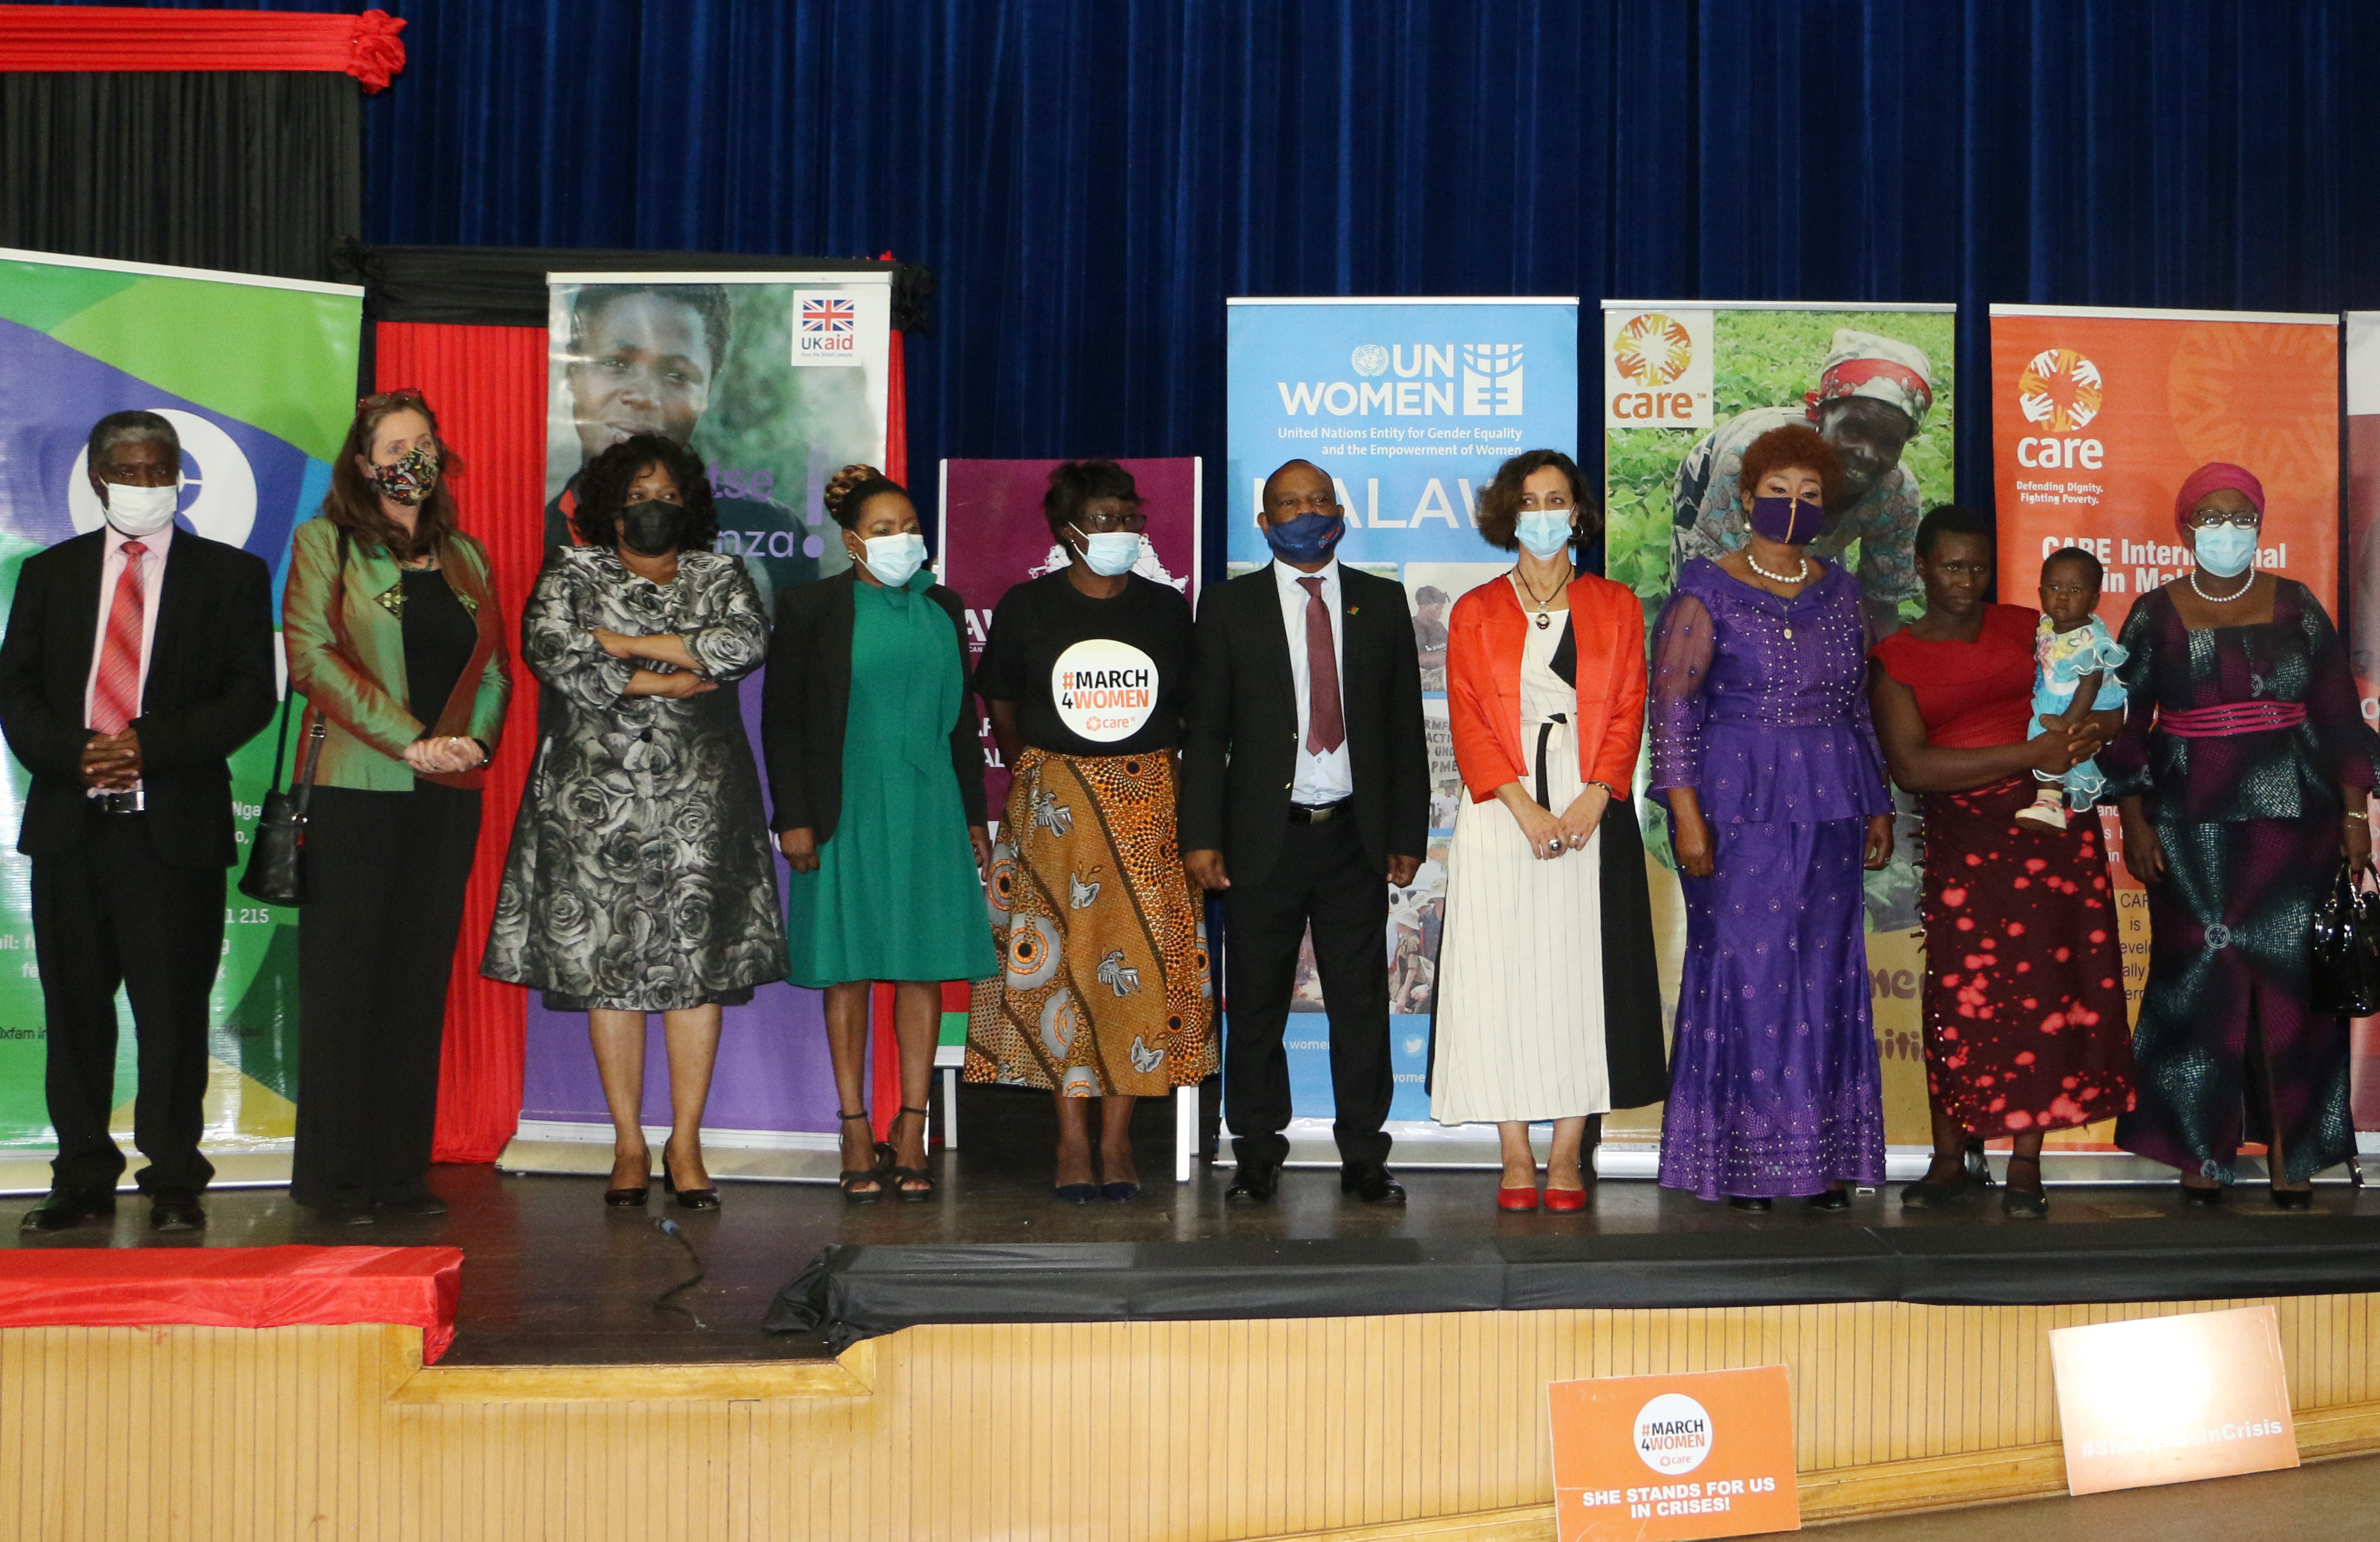 National launch of commemoration of International Women's Day in Malawi